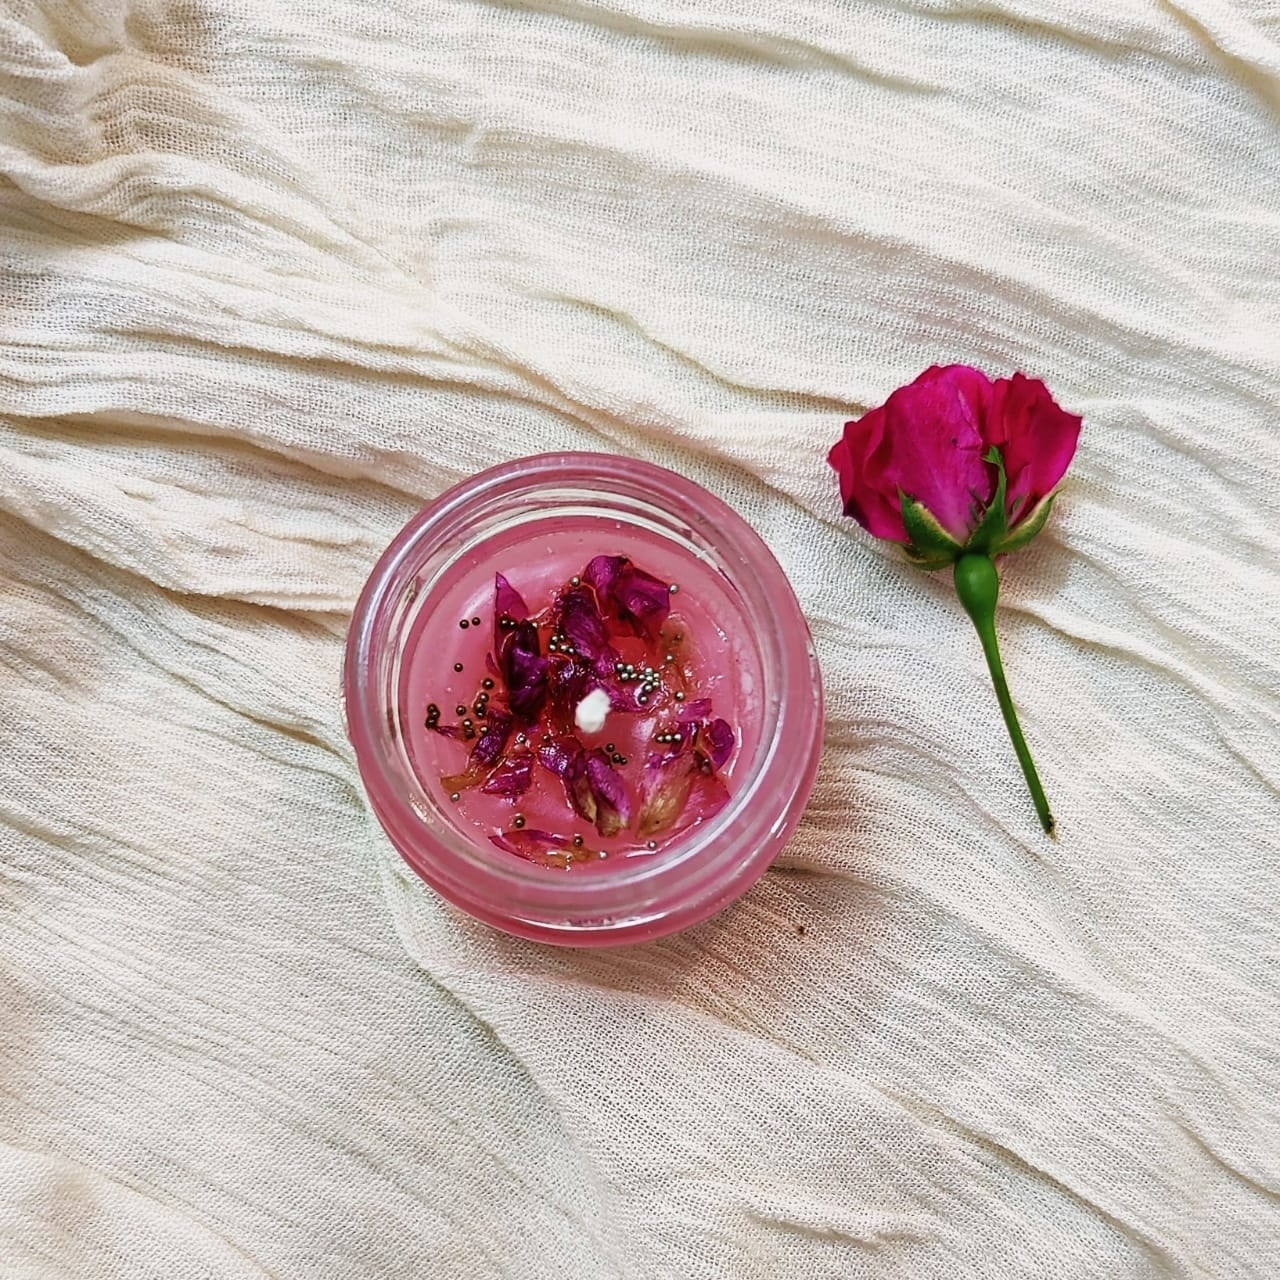 A rose-scented candle made in the glass jar. It's kept on white cloth and there's a small rose kept next to it.